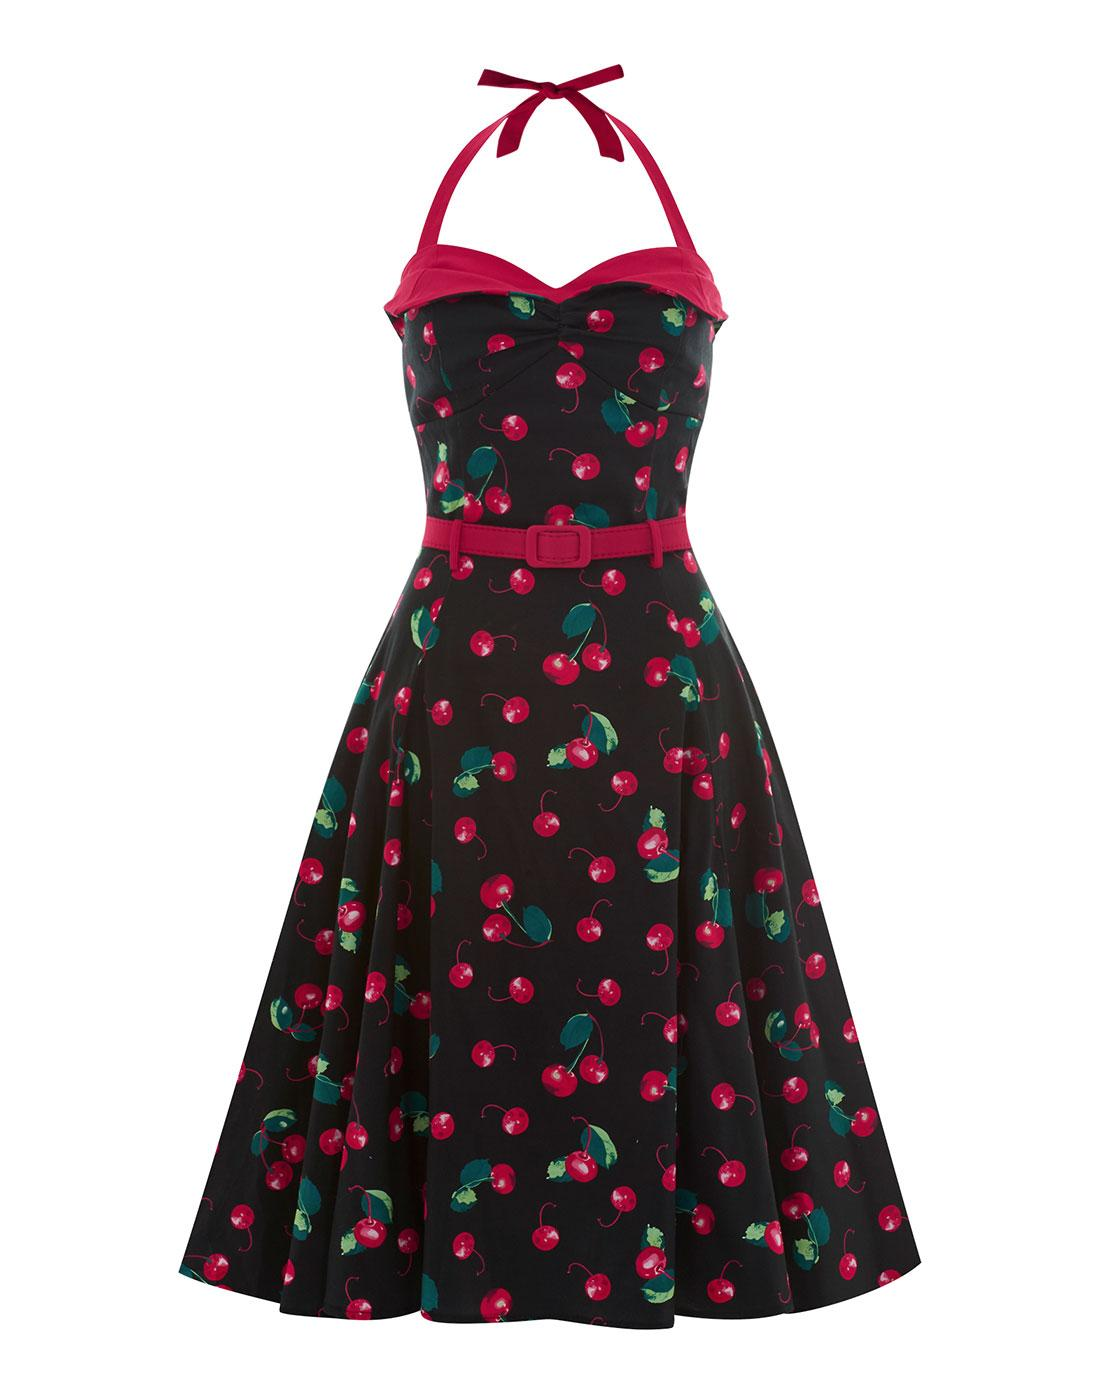 Ginger COLLECTIF 1950s Cherry Print Swing Dress